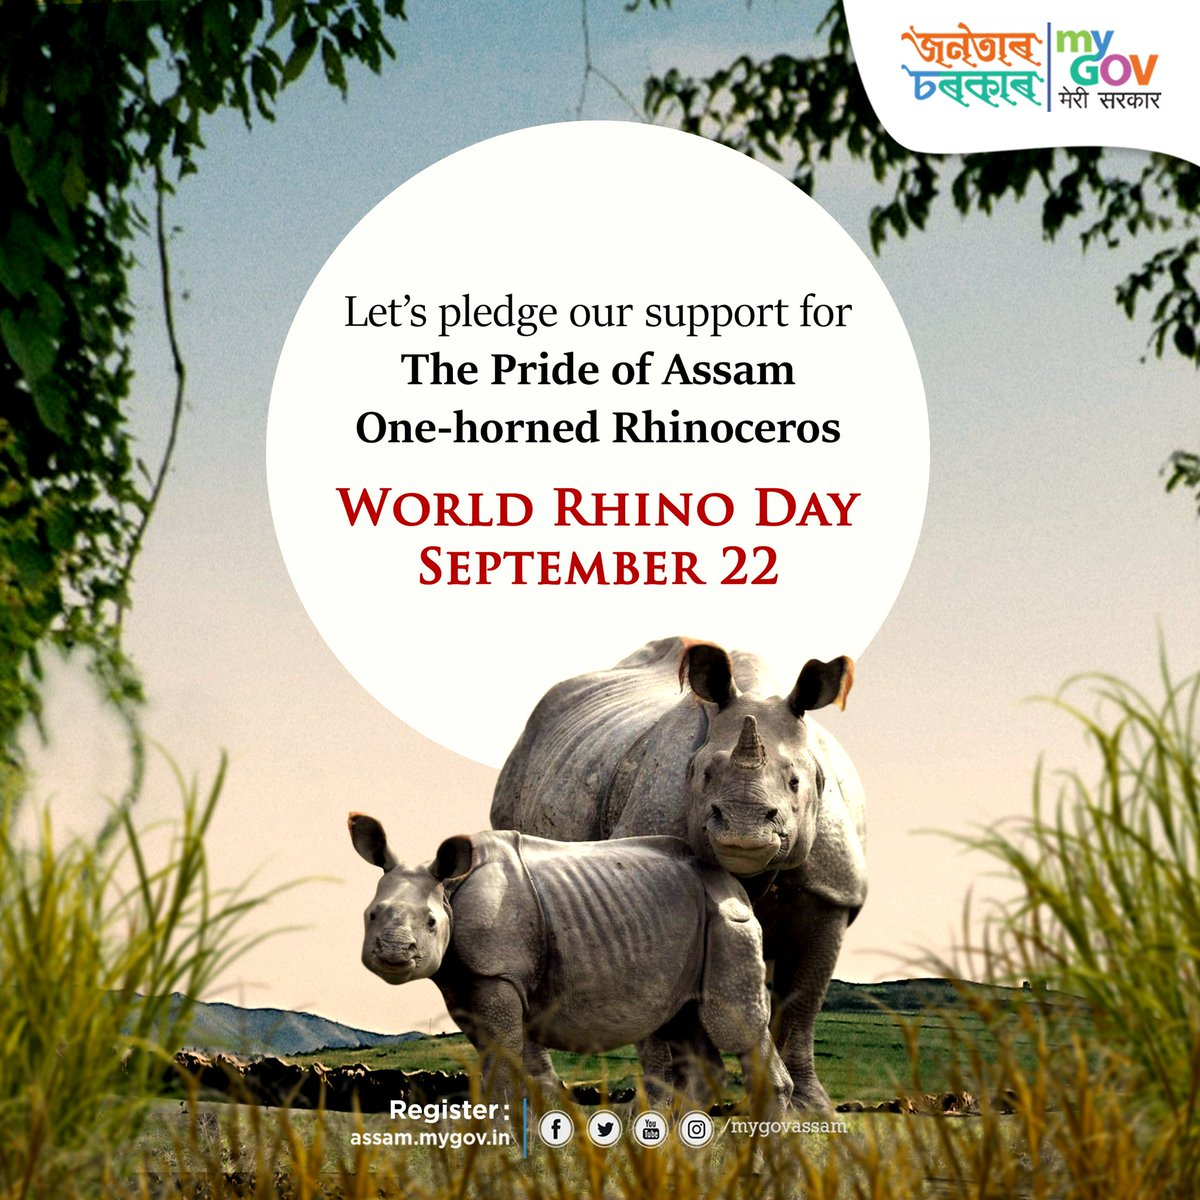 The one-horned rhinoceros constitutes a remarkable part of the identity of Assam. On #WorldRhinoDay, let's support the cause of conservation of the majestic animal. https://t.co/HyYFnlXbbm